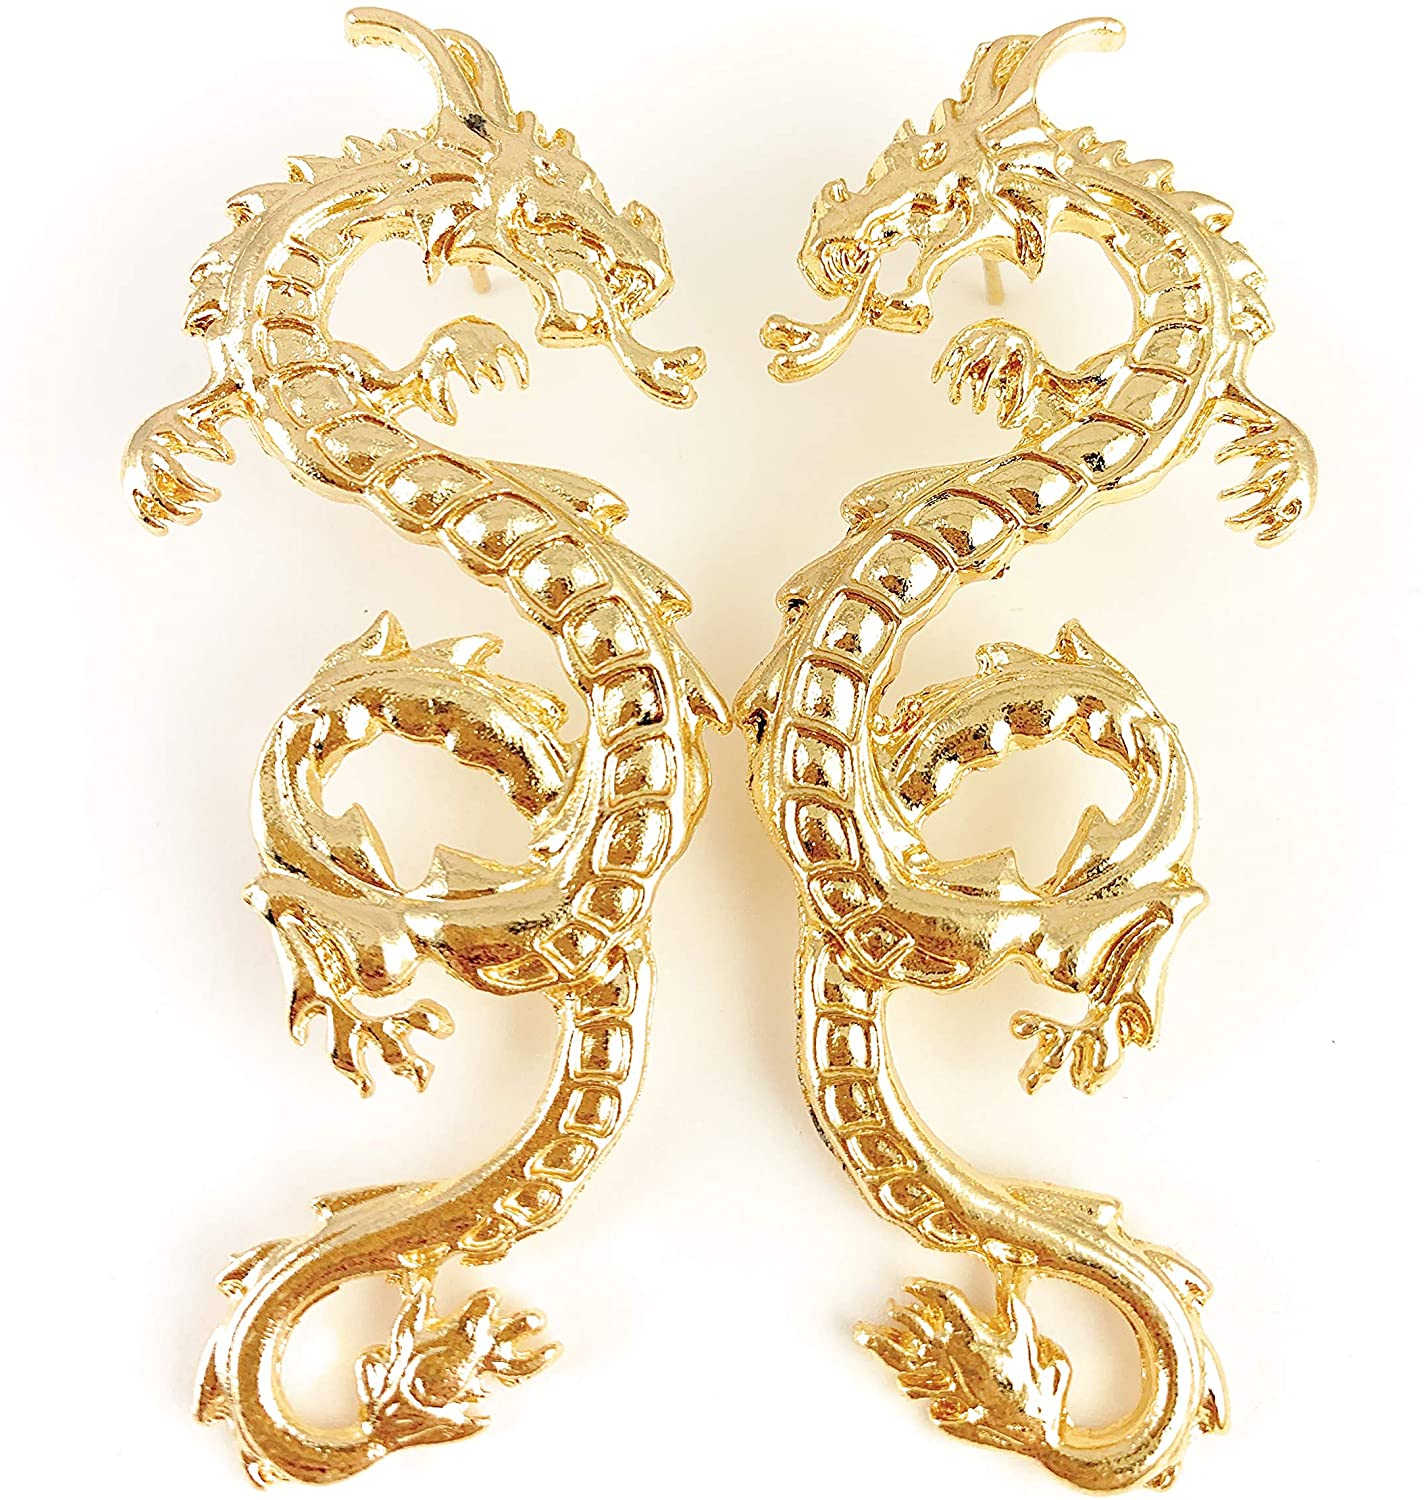 gold dragon earrings Big dangle post stud spiked fire breath dragon tail 2 5/8 inches long huge